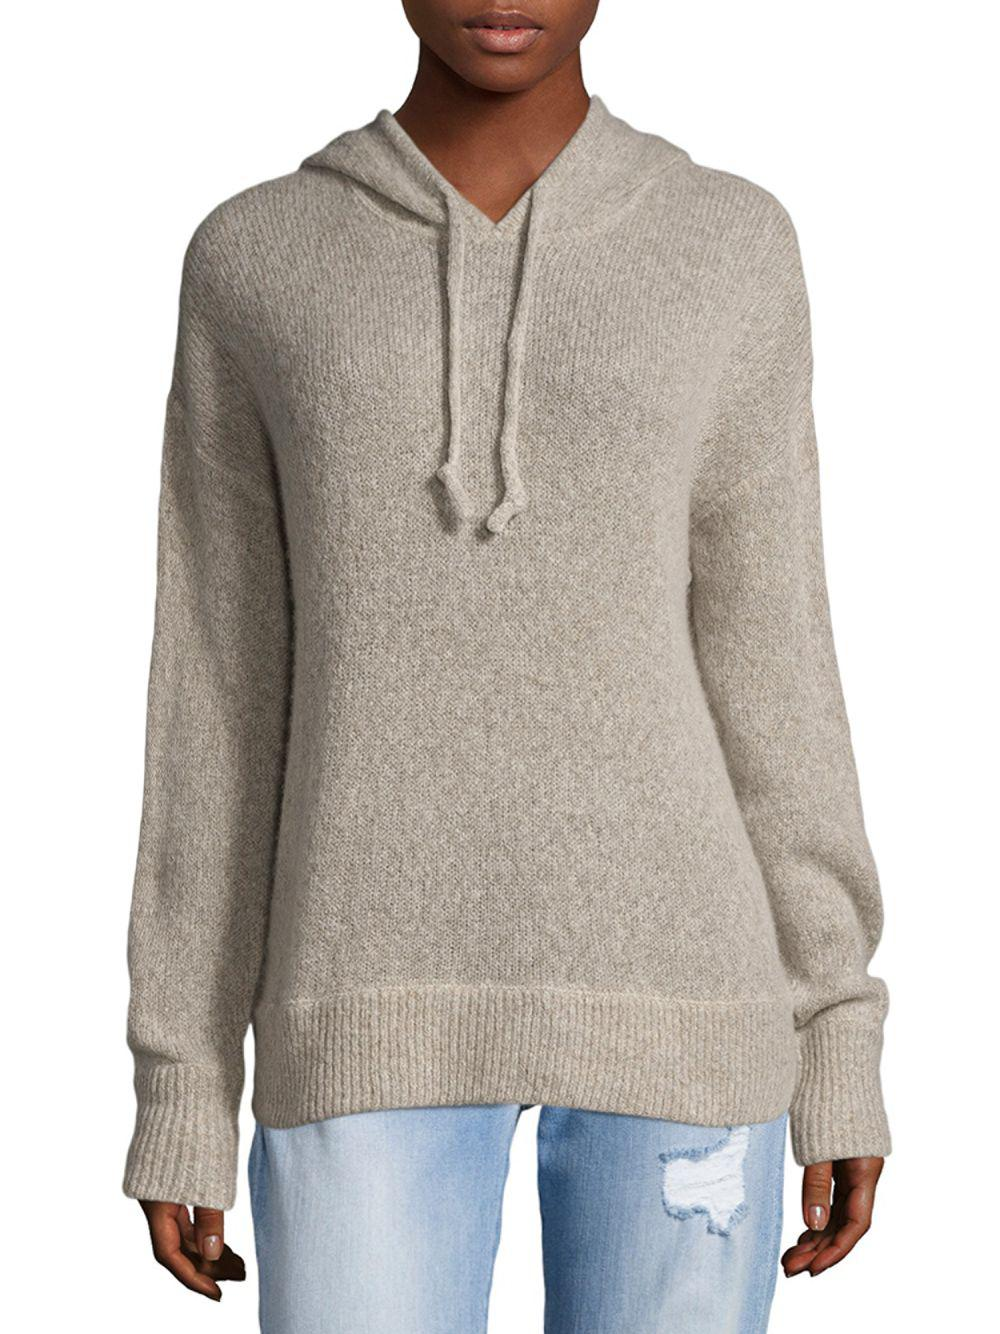 bca92cd989a NAKEDCASHMERE Cashmere Drawstring Hoodie in Gray - Lyst